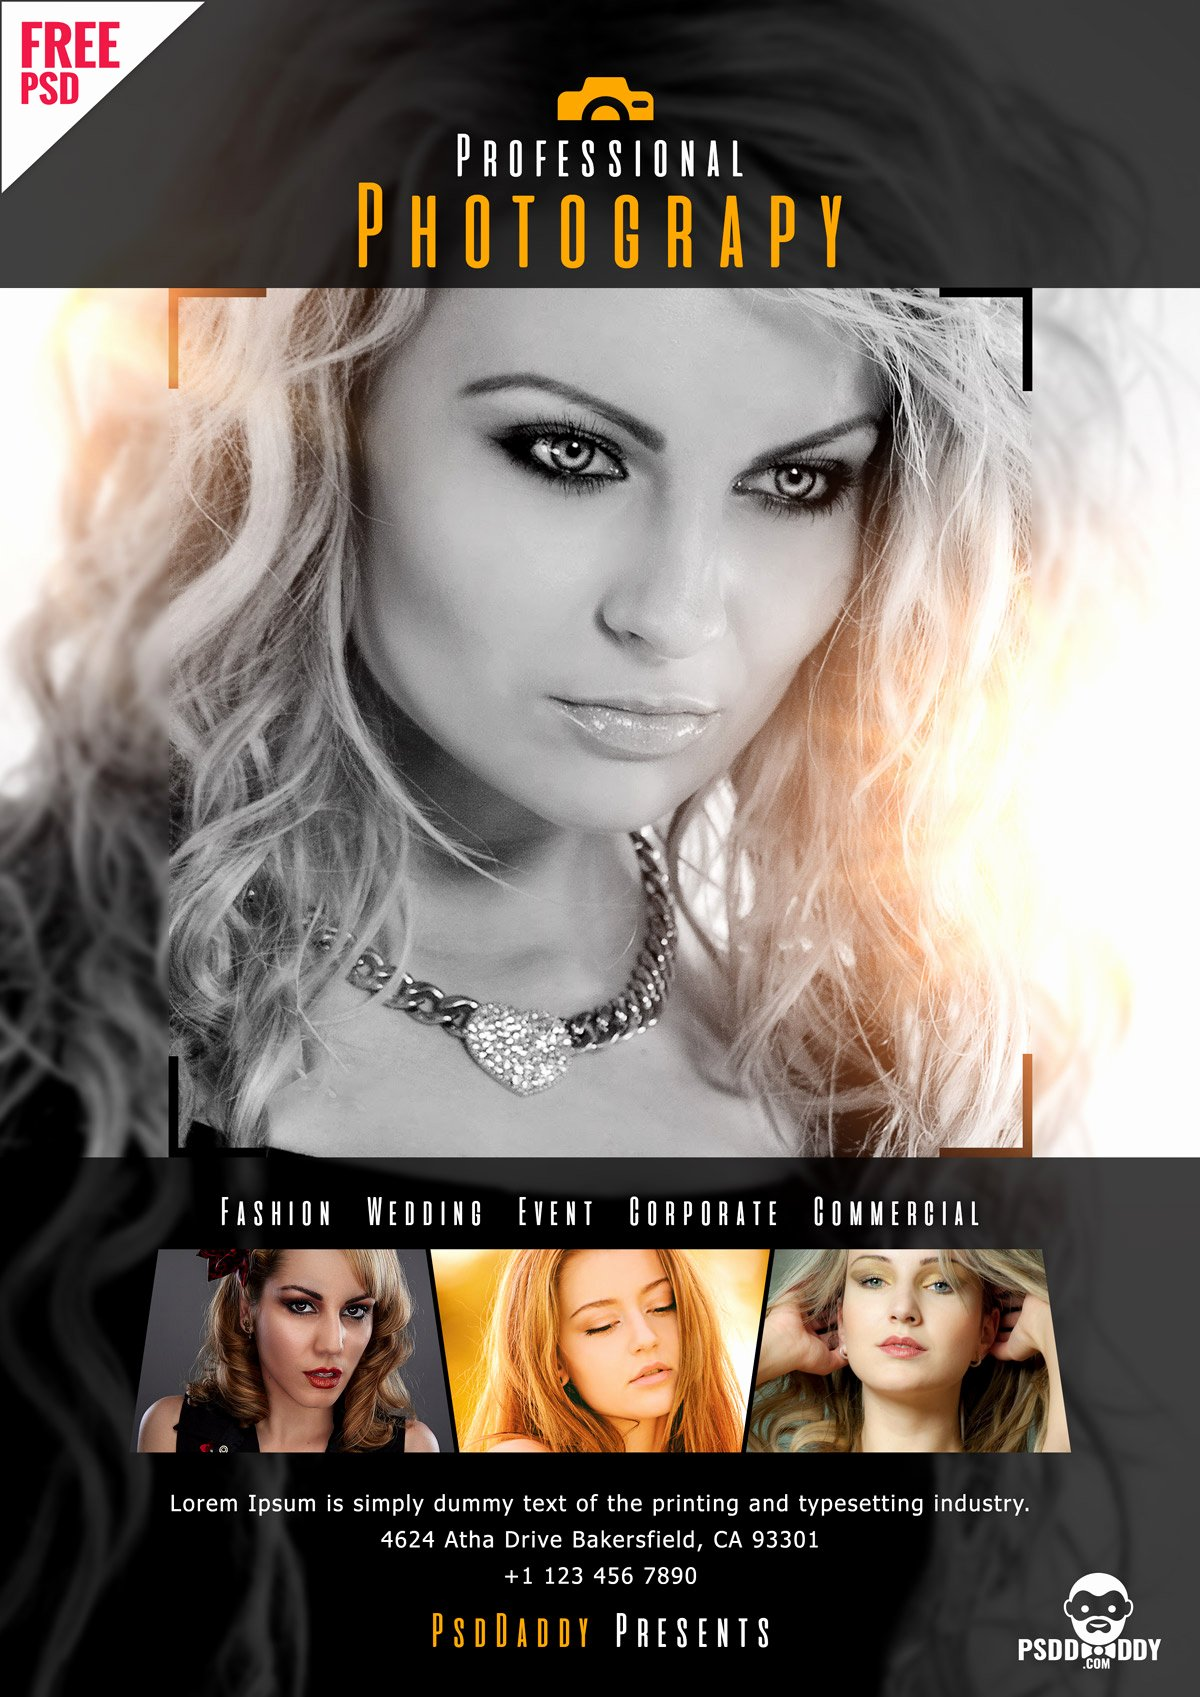 Photography Flyer Template Free Best Of [download]professional Graphy Flyer Psd